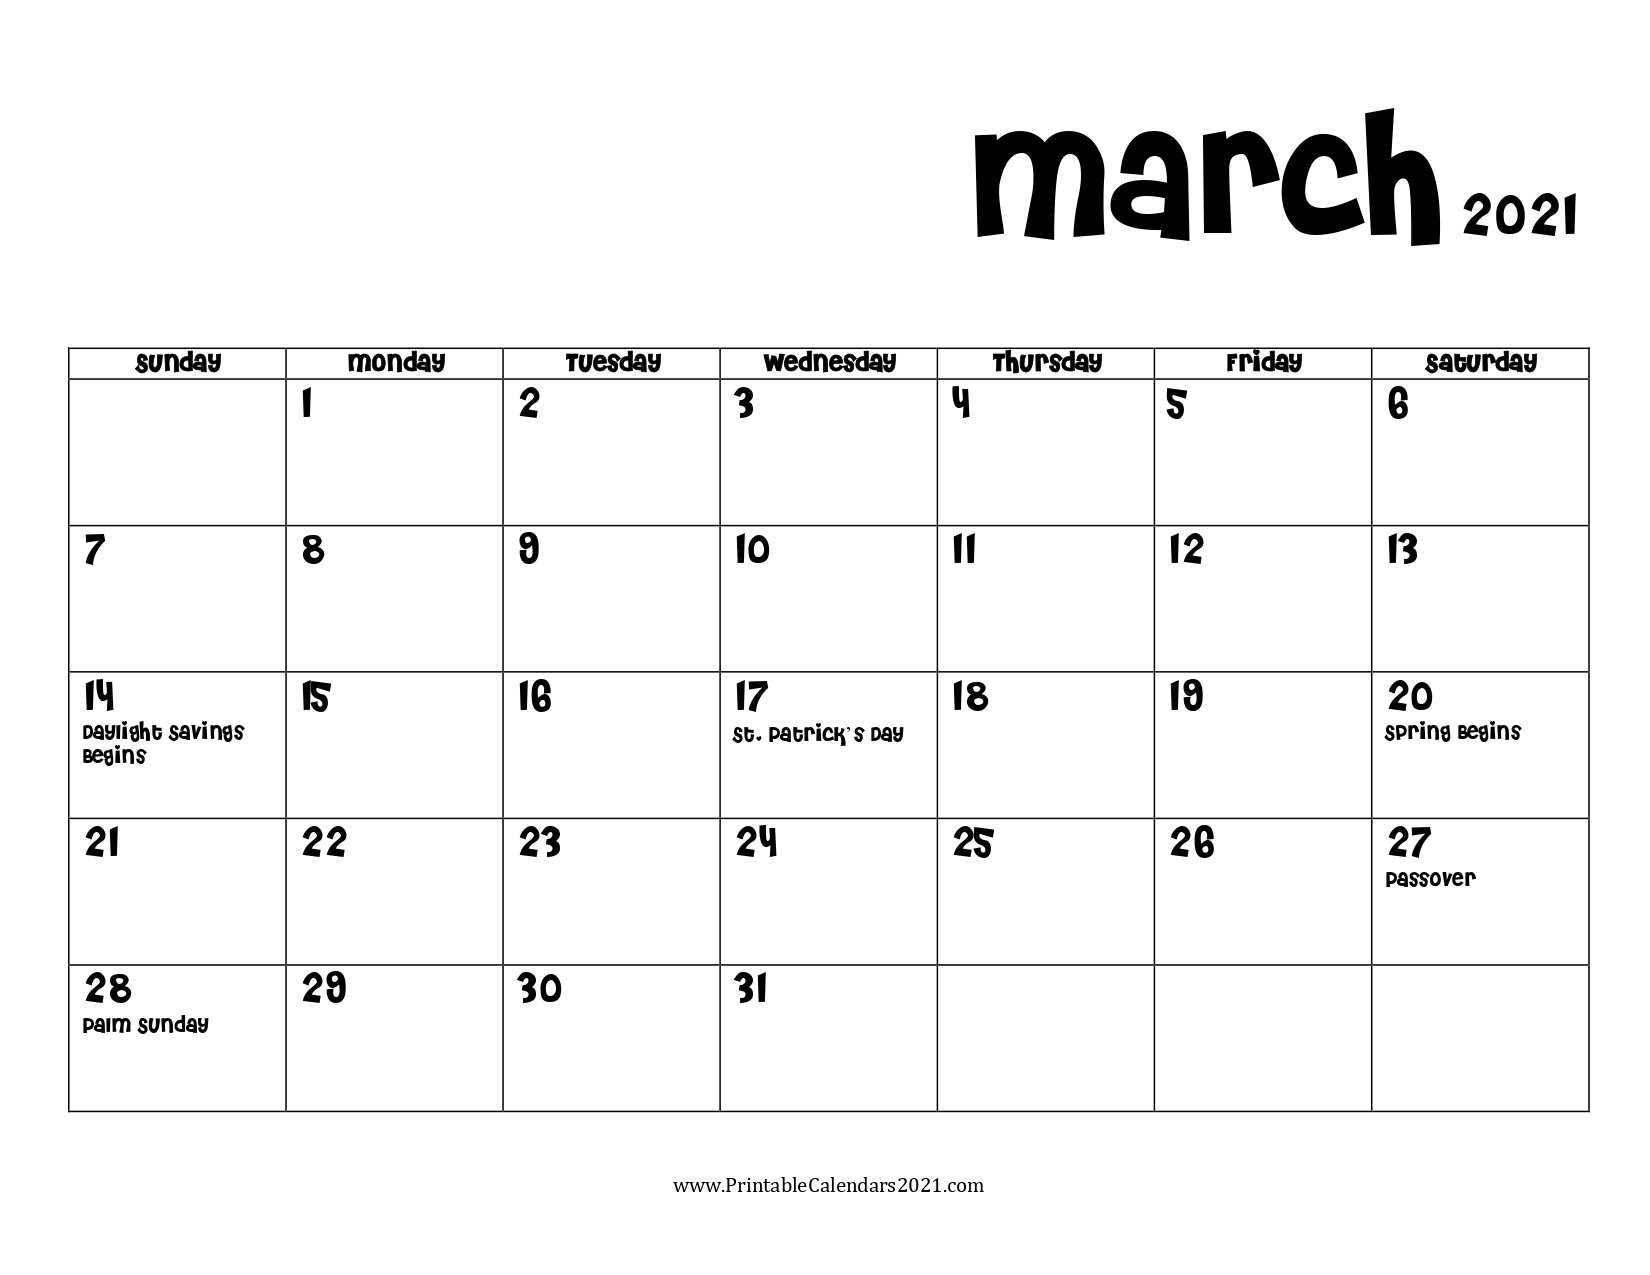 68+ Free March 2021 Calendar Printable With Holidays, Blank, Pdf within Free Printable Planner Pdf 2021 Image